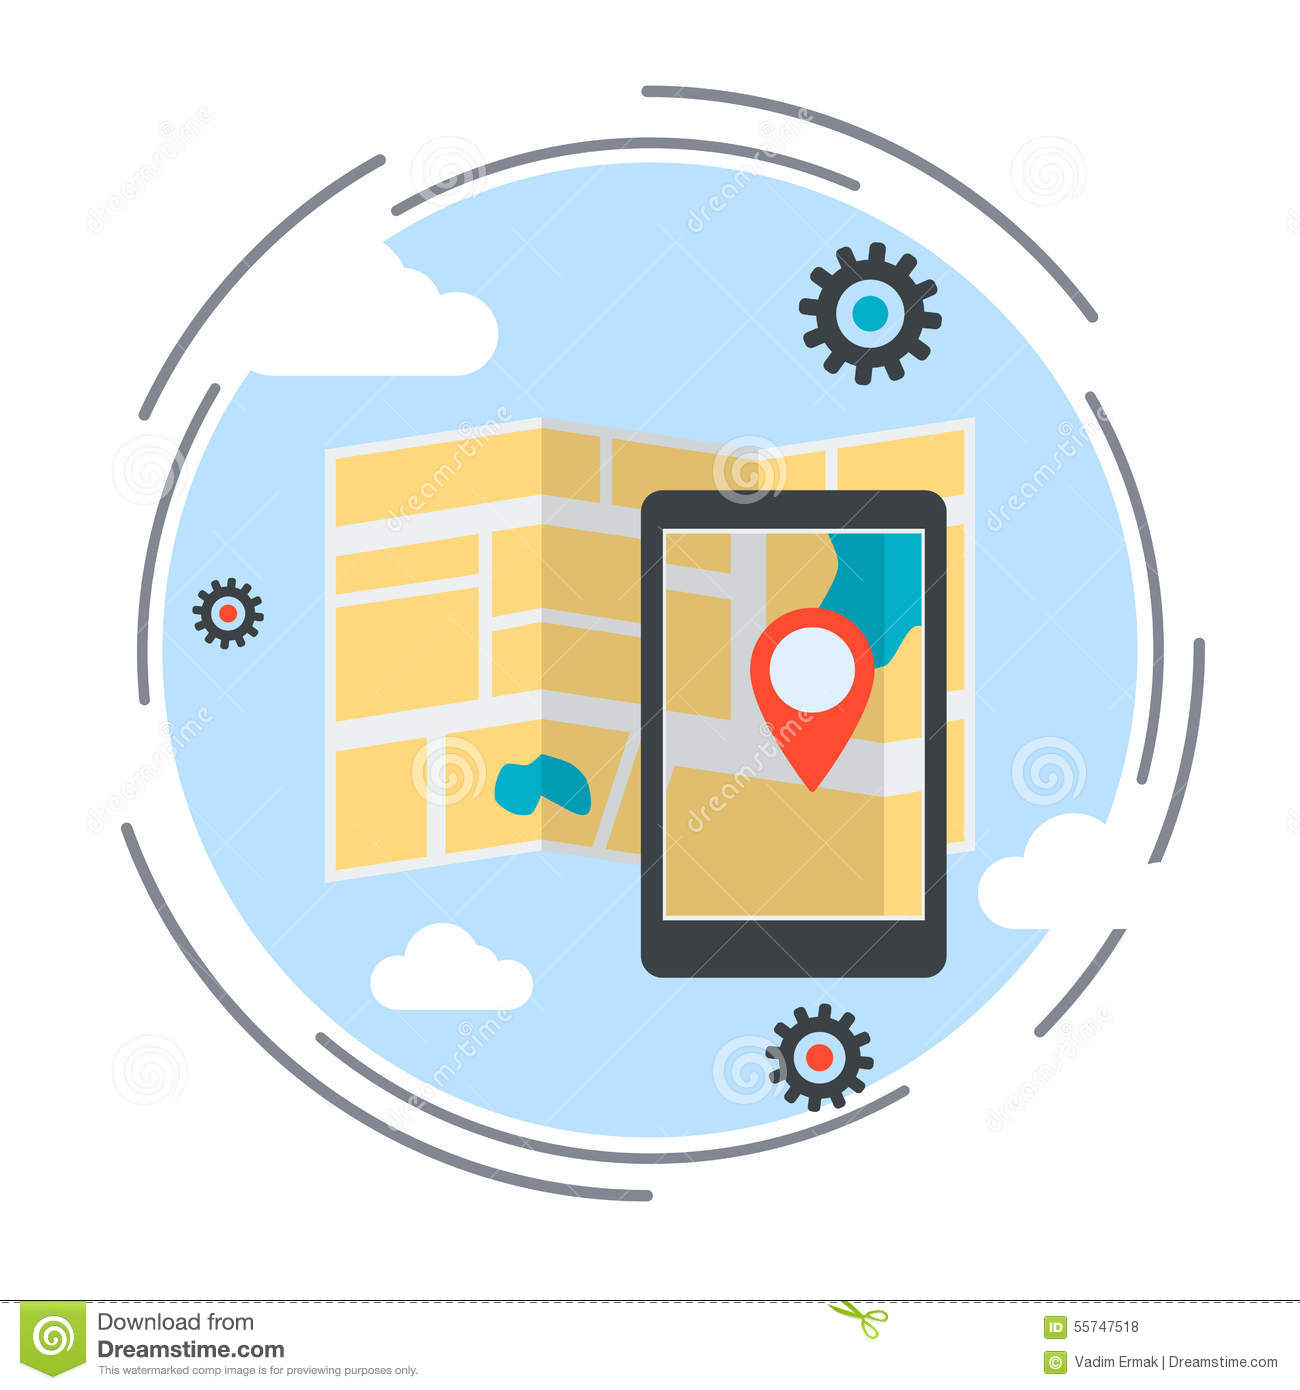 Location map, route, GPS navigation service vector illustration